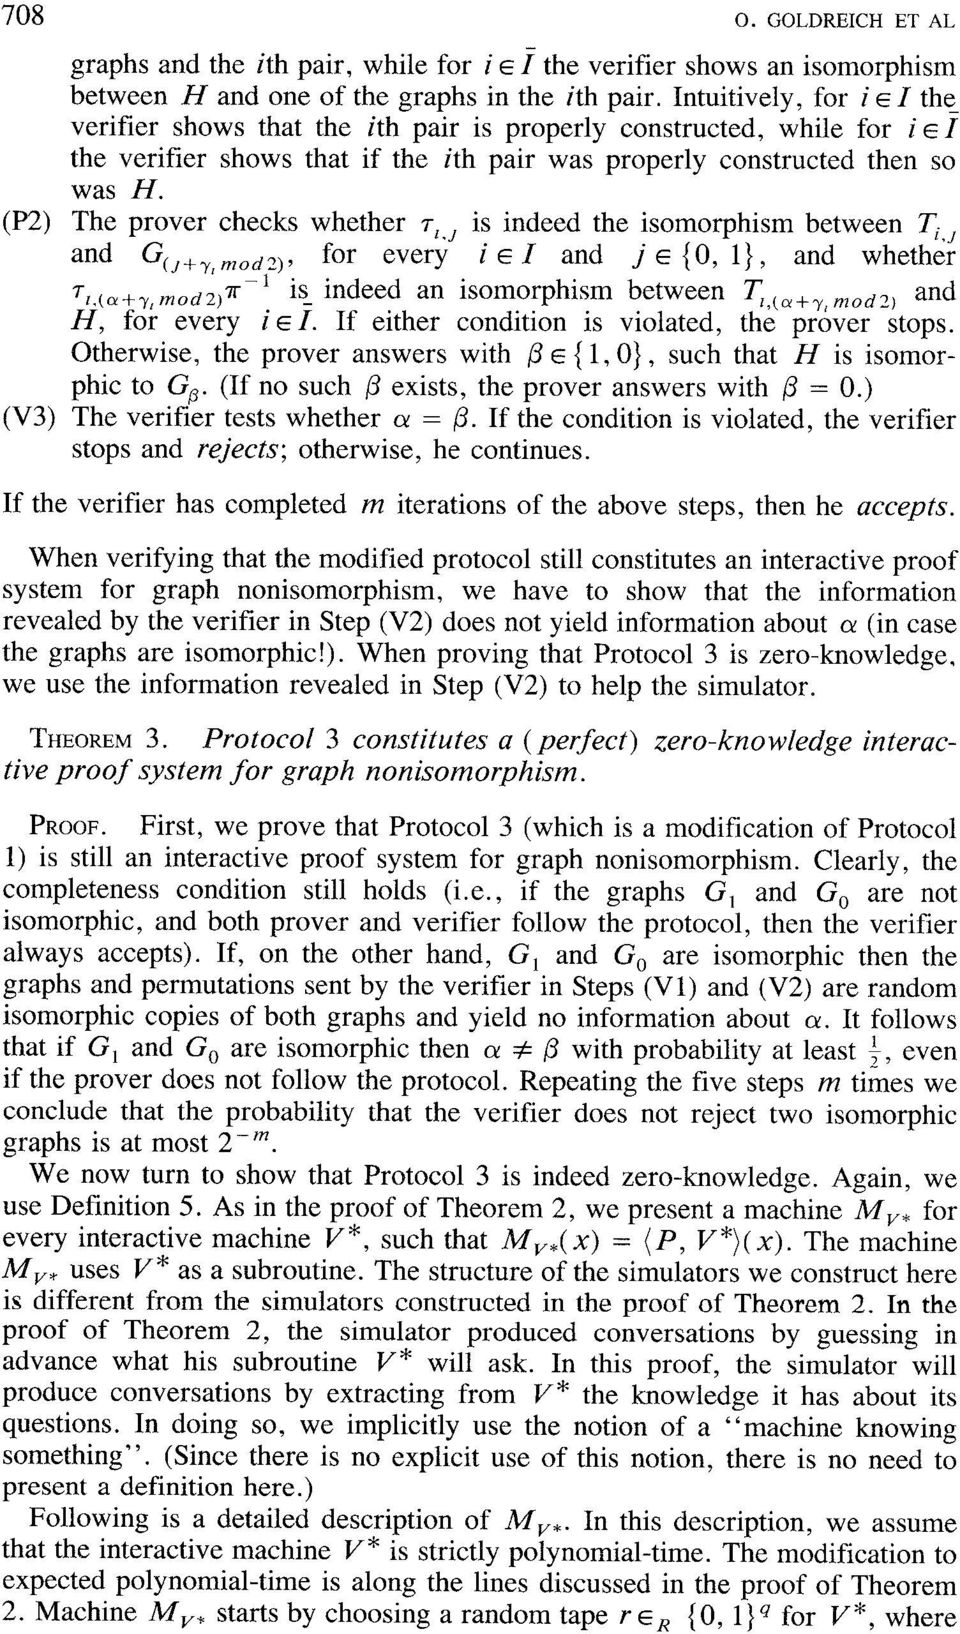 (P2) The prover checks whether ~I,J is indeed the isomorphism between Ti ~ and G(J+Y,~Odz), for every i e 1 and j ~ {O, 1}, and whethir 1 is_ indeed an isomorphism between T, (a+ ~z~ ~~~, and ~1,